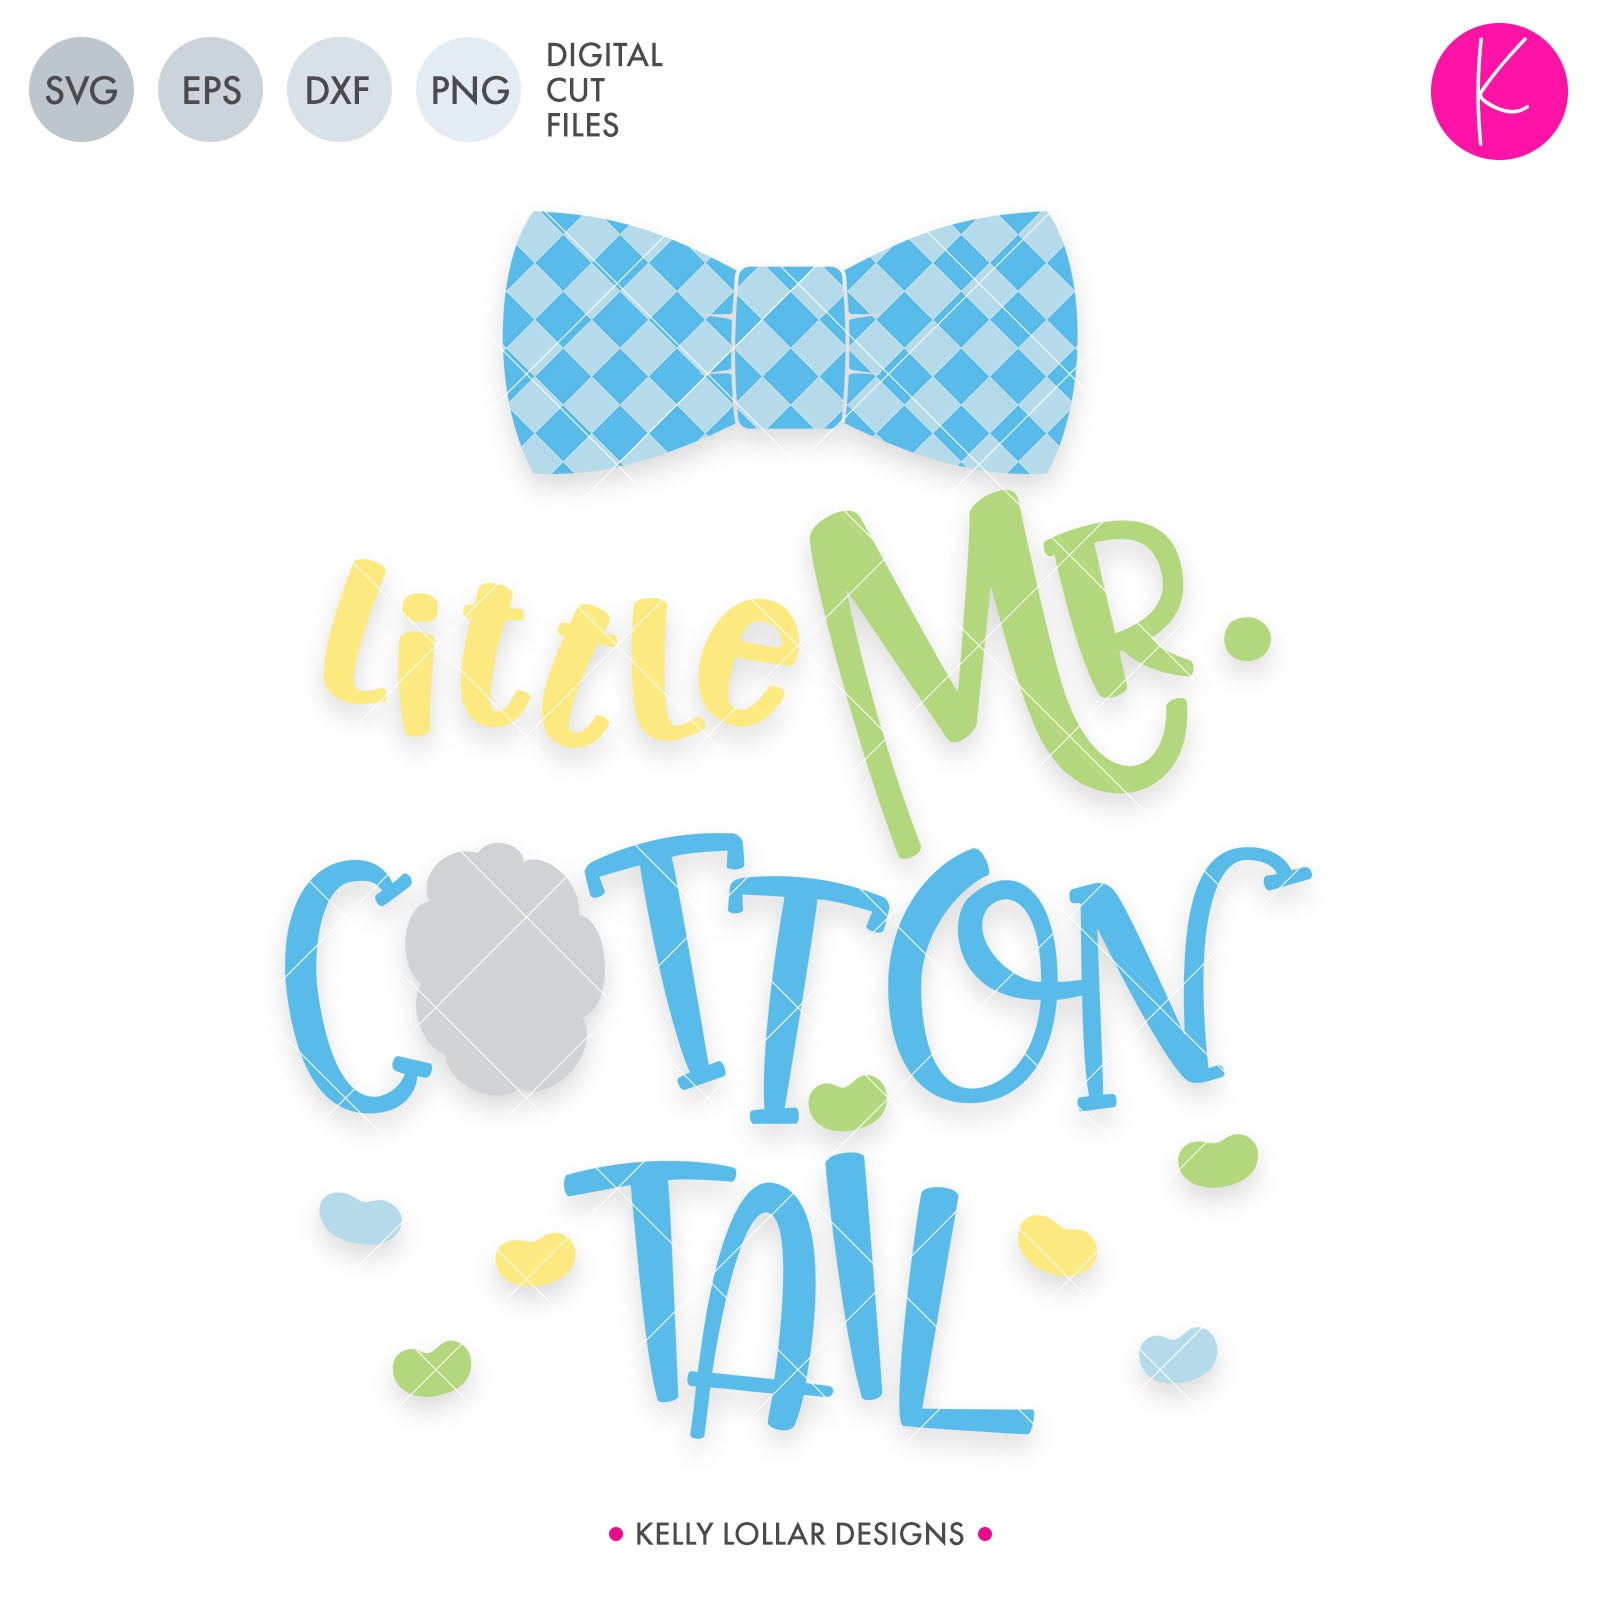 Little Mr. Cottontail | SVG DXF EPS PNG Cut Files Little Mr. Cottontail with Gingham Bow Tie and Jelly Beans for Boy Easter Shirts | SVG DXF PNG Cut Files Get your sweetie pie ready for Easter with this adorable